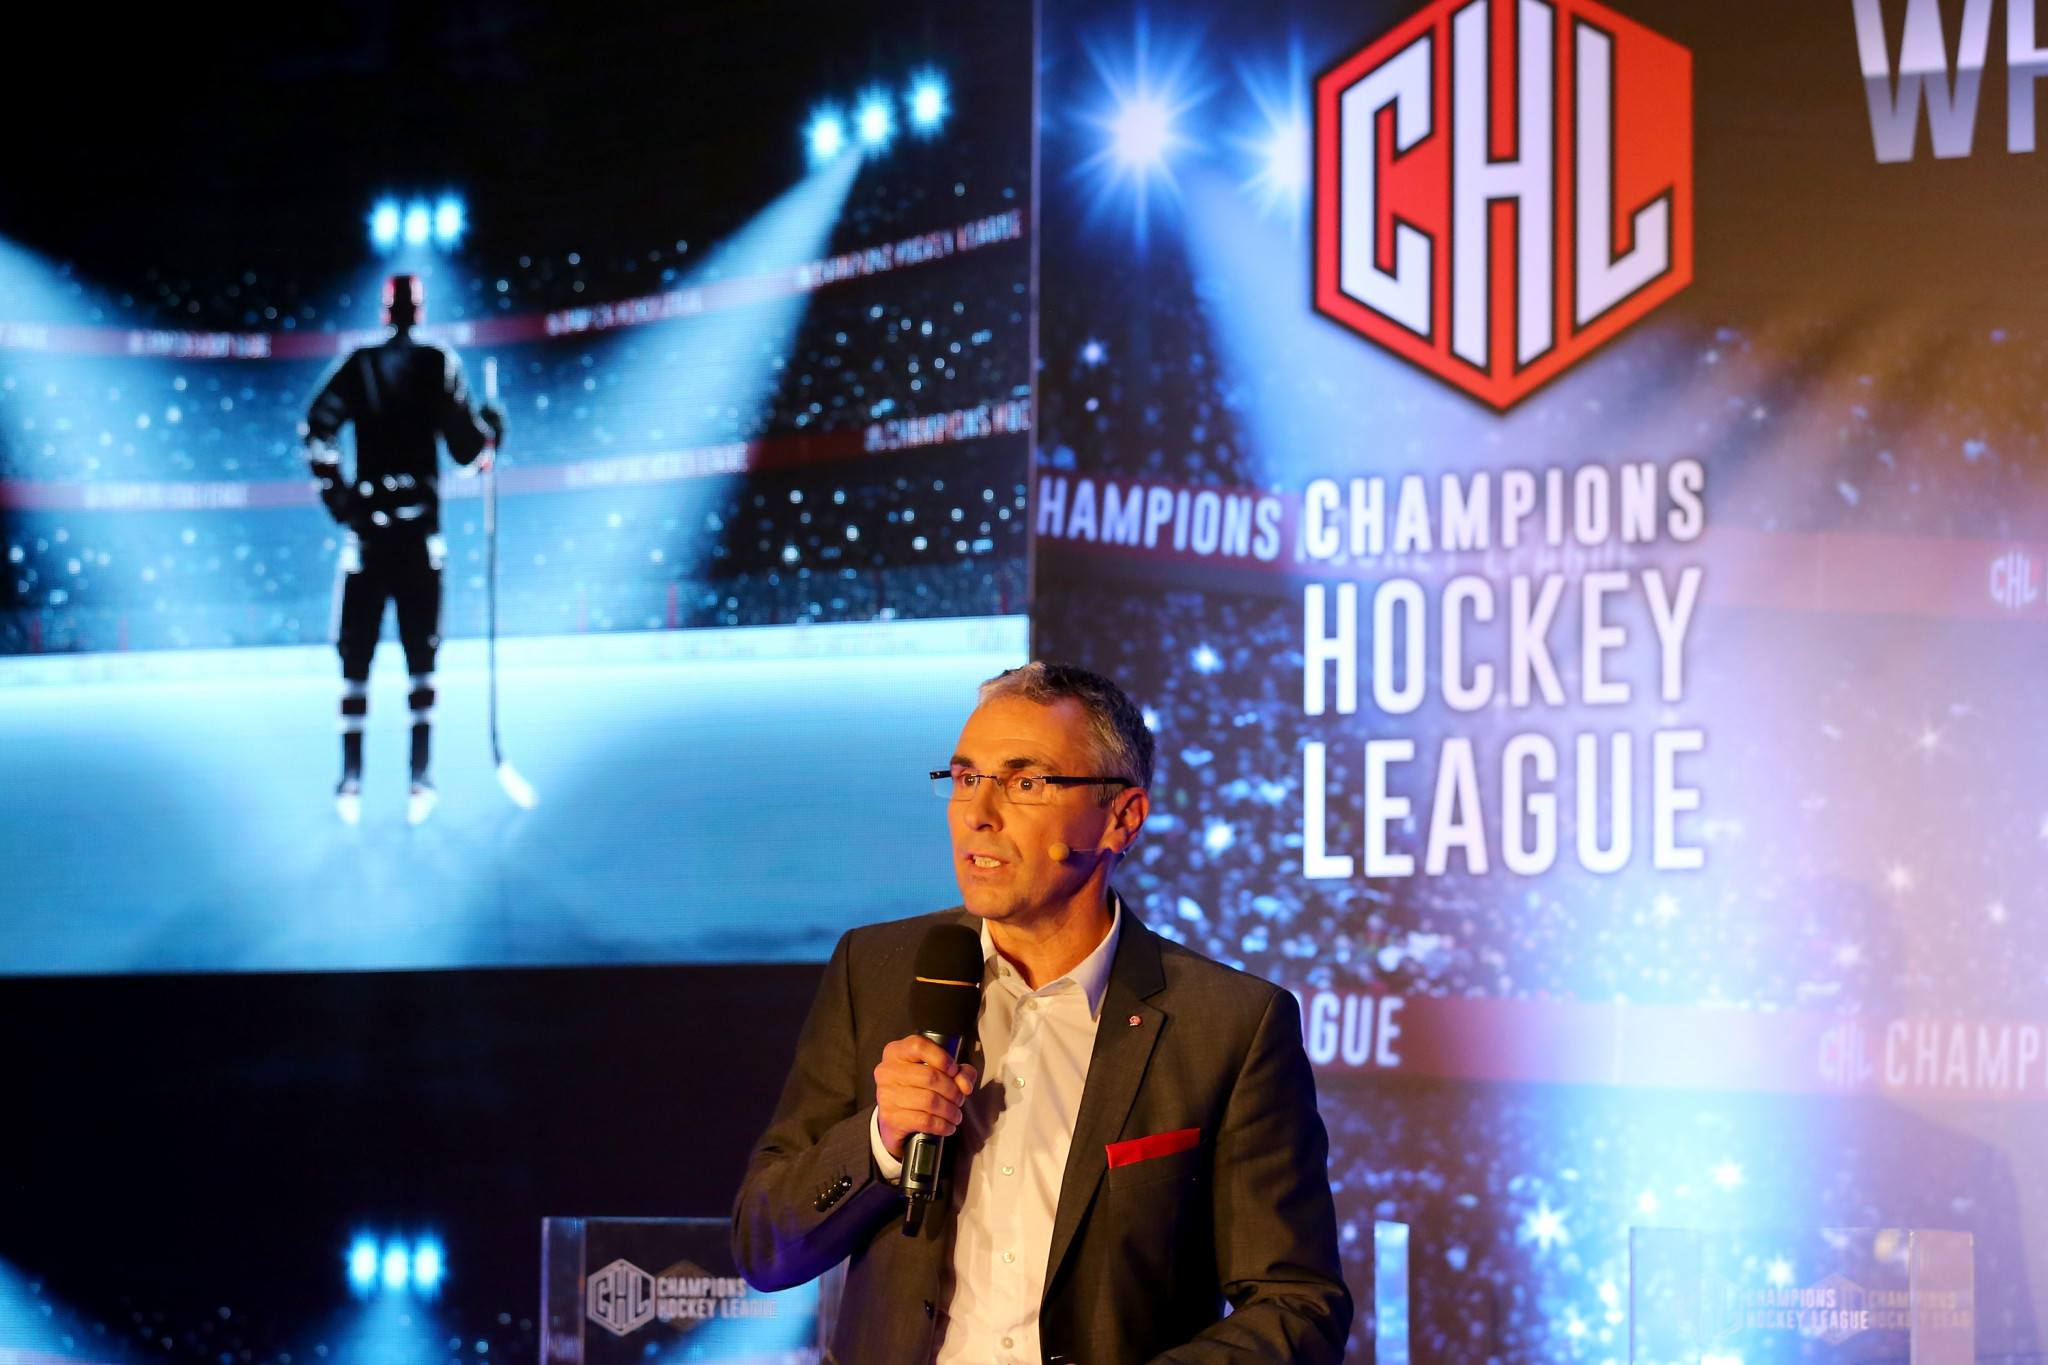 Champions Hockey League boast impressive figures after fan-first strategy